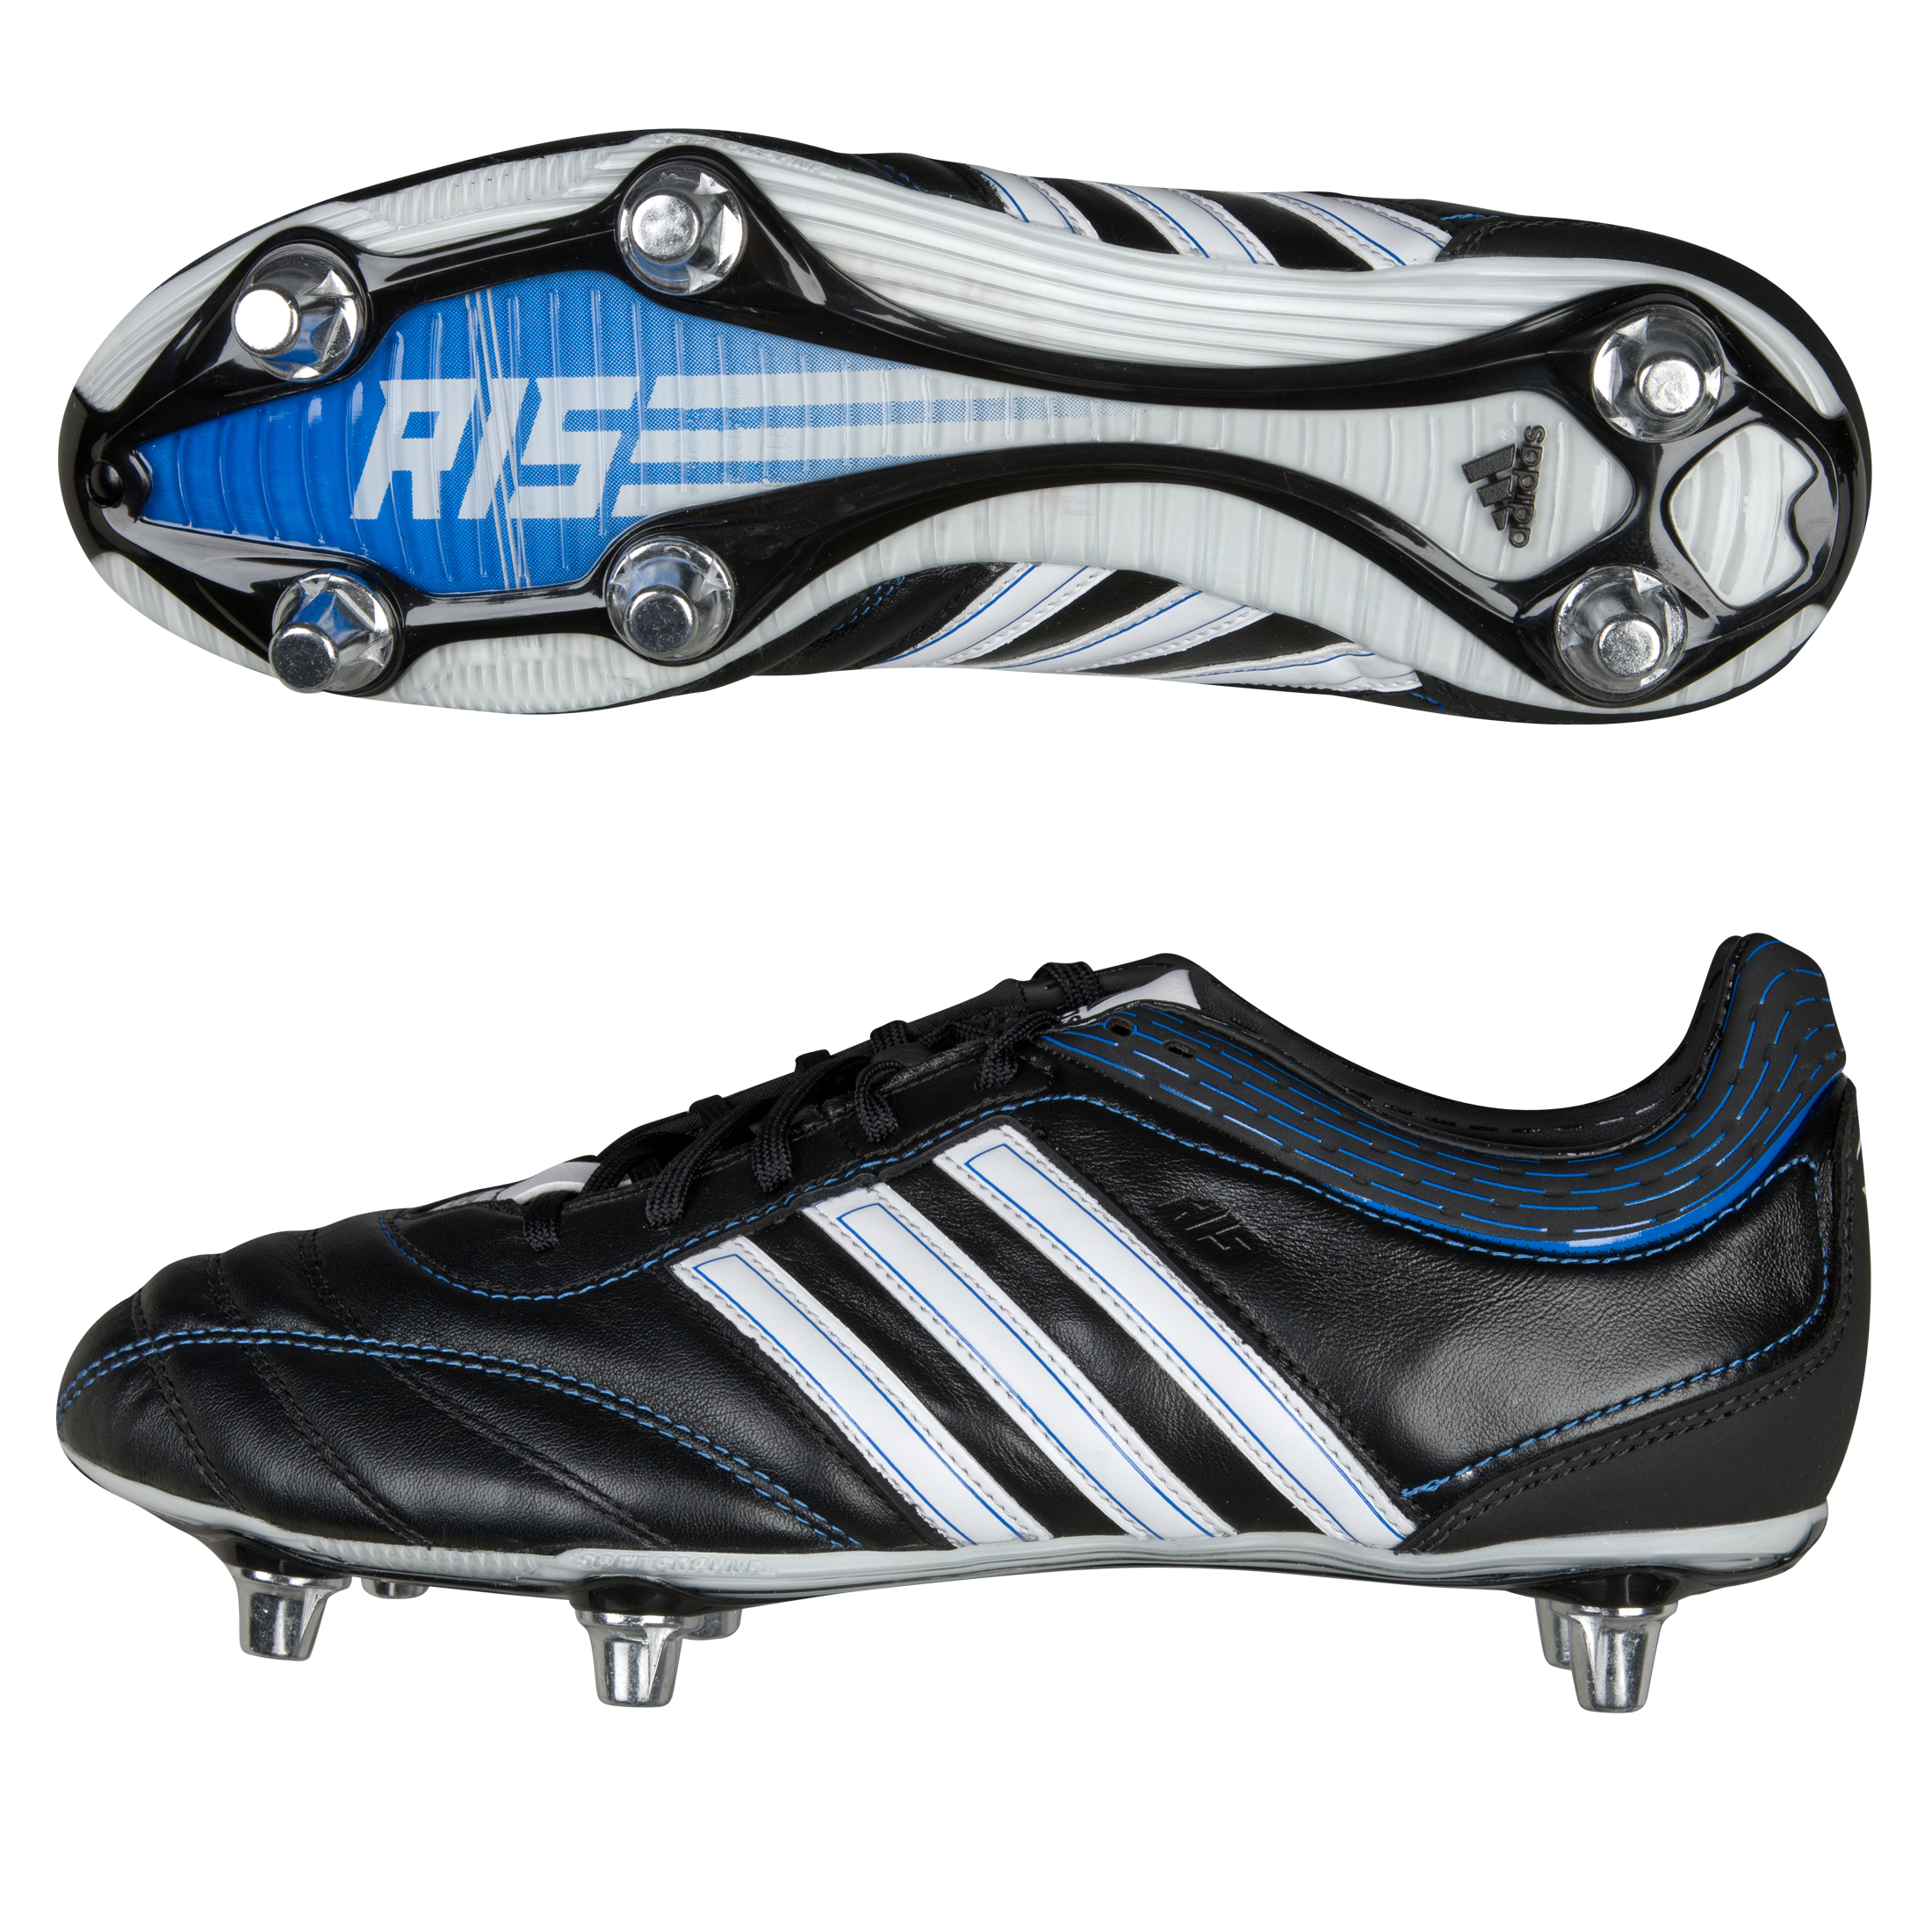 Adidas R15 Soft Ground II Leather Rugby Boots - Black / White / Prime Blue